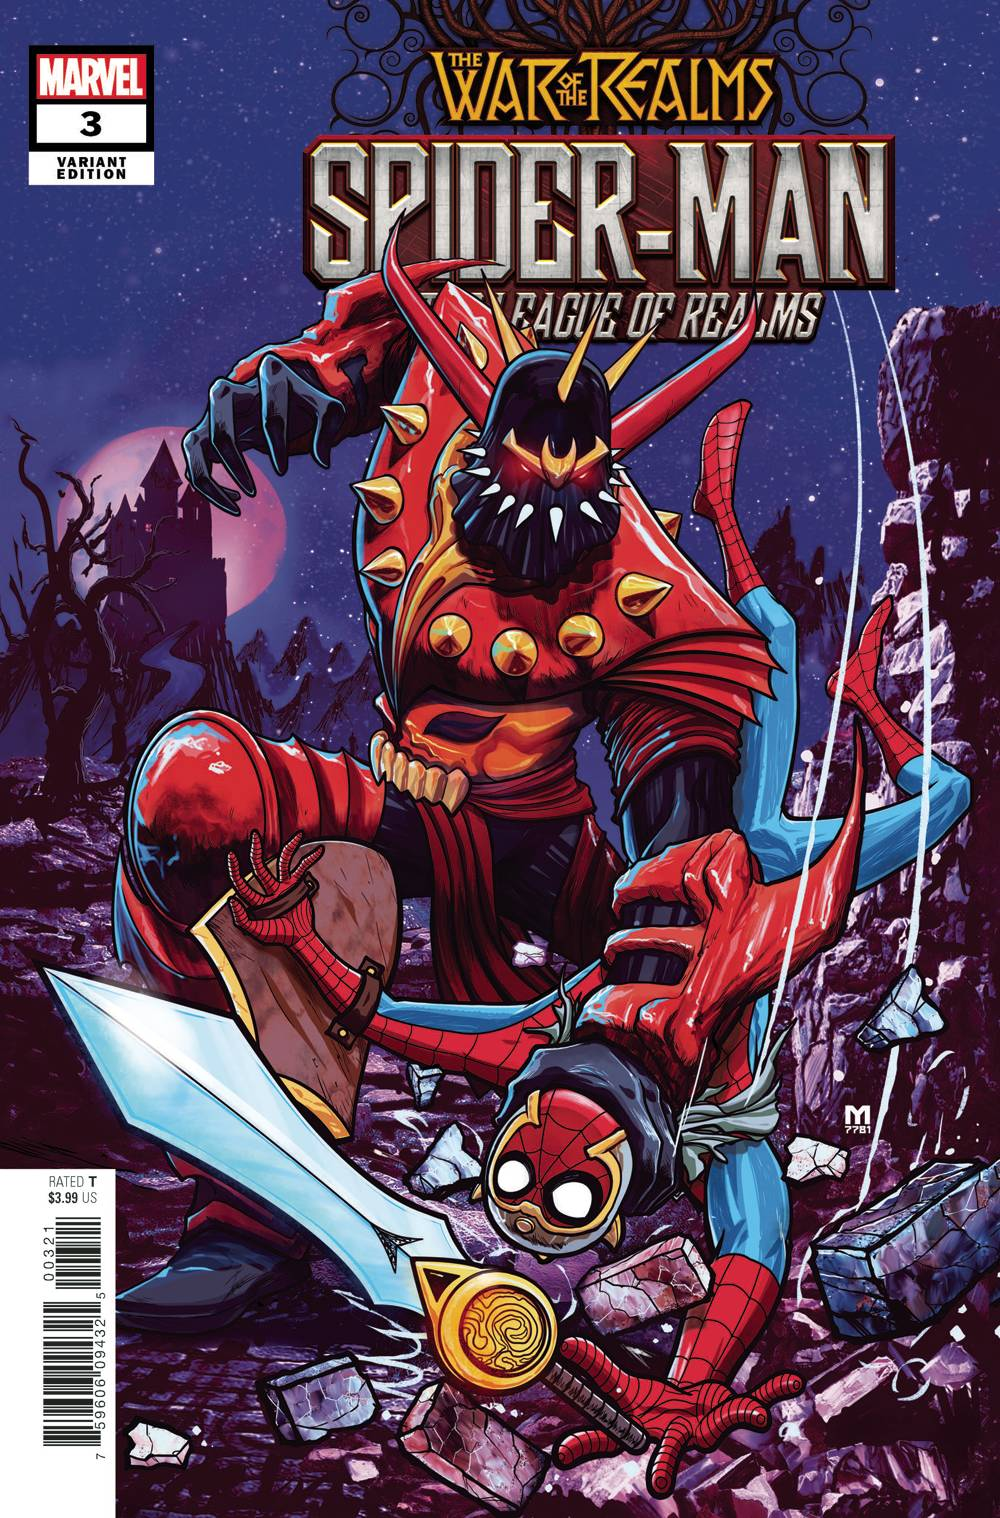 SPIDER-MAN & LEAGUE OF REALMS 3 of 3 DALFONSO VAR.jpg